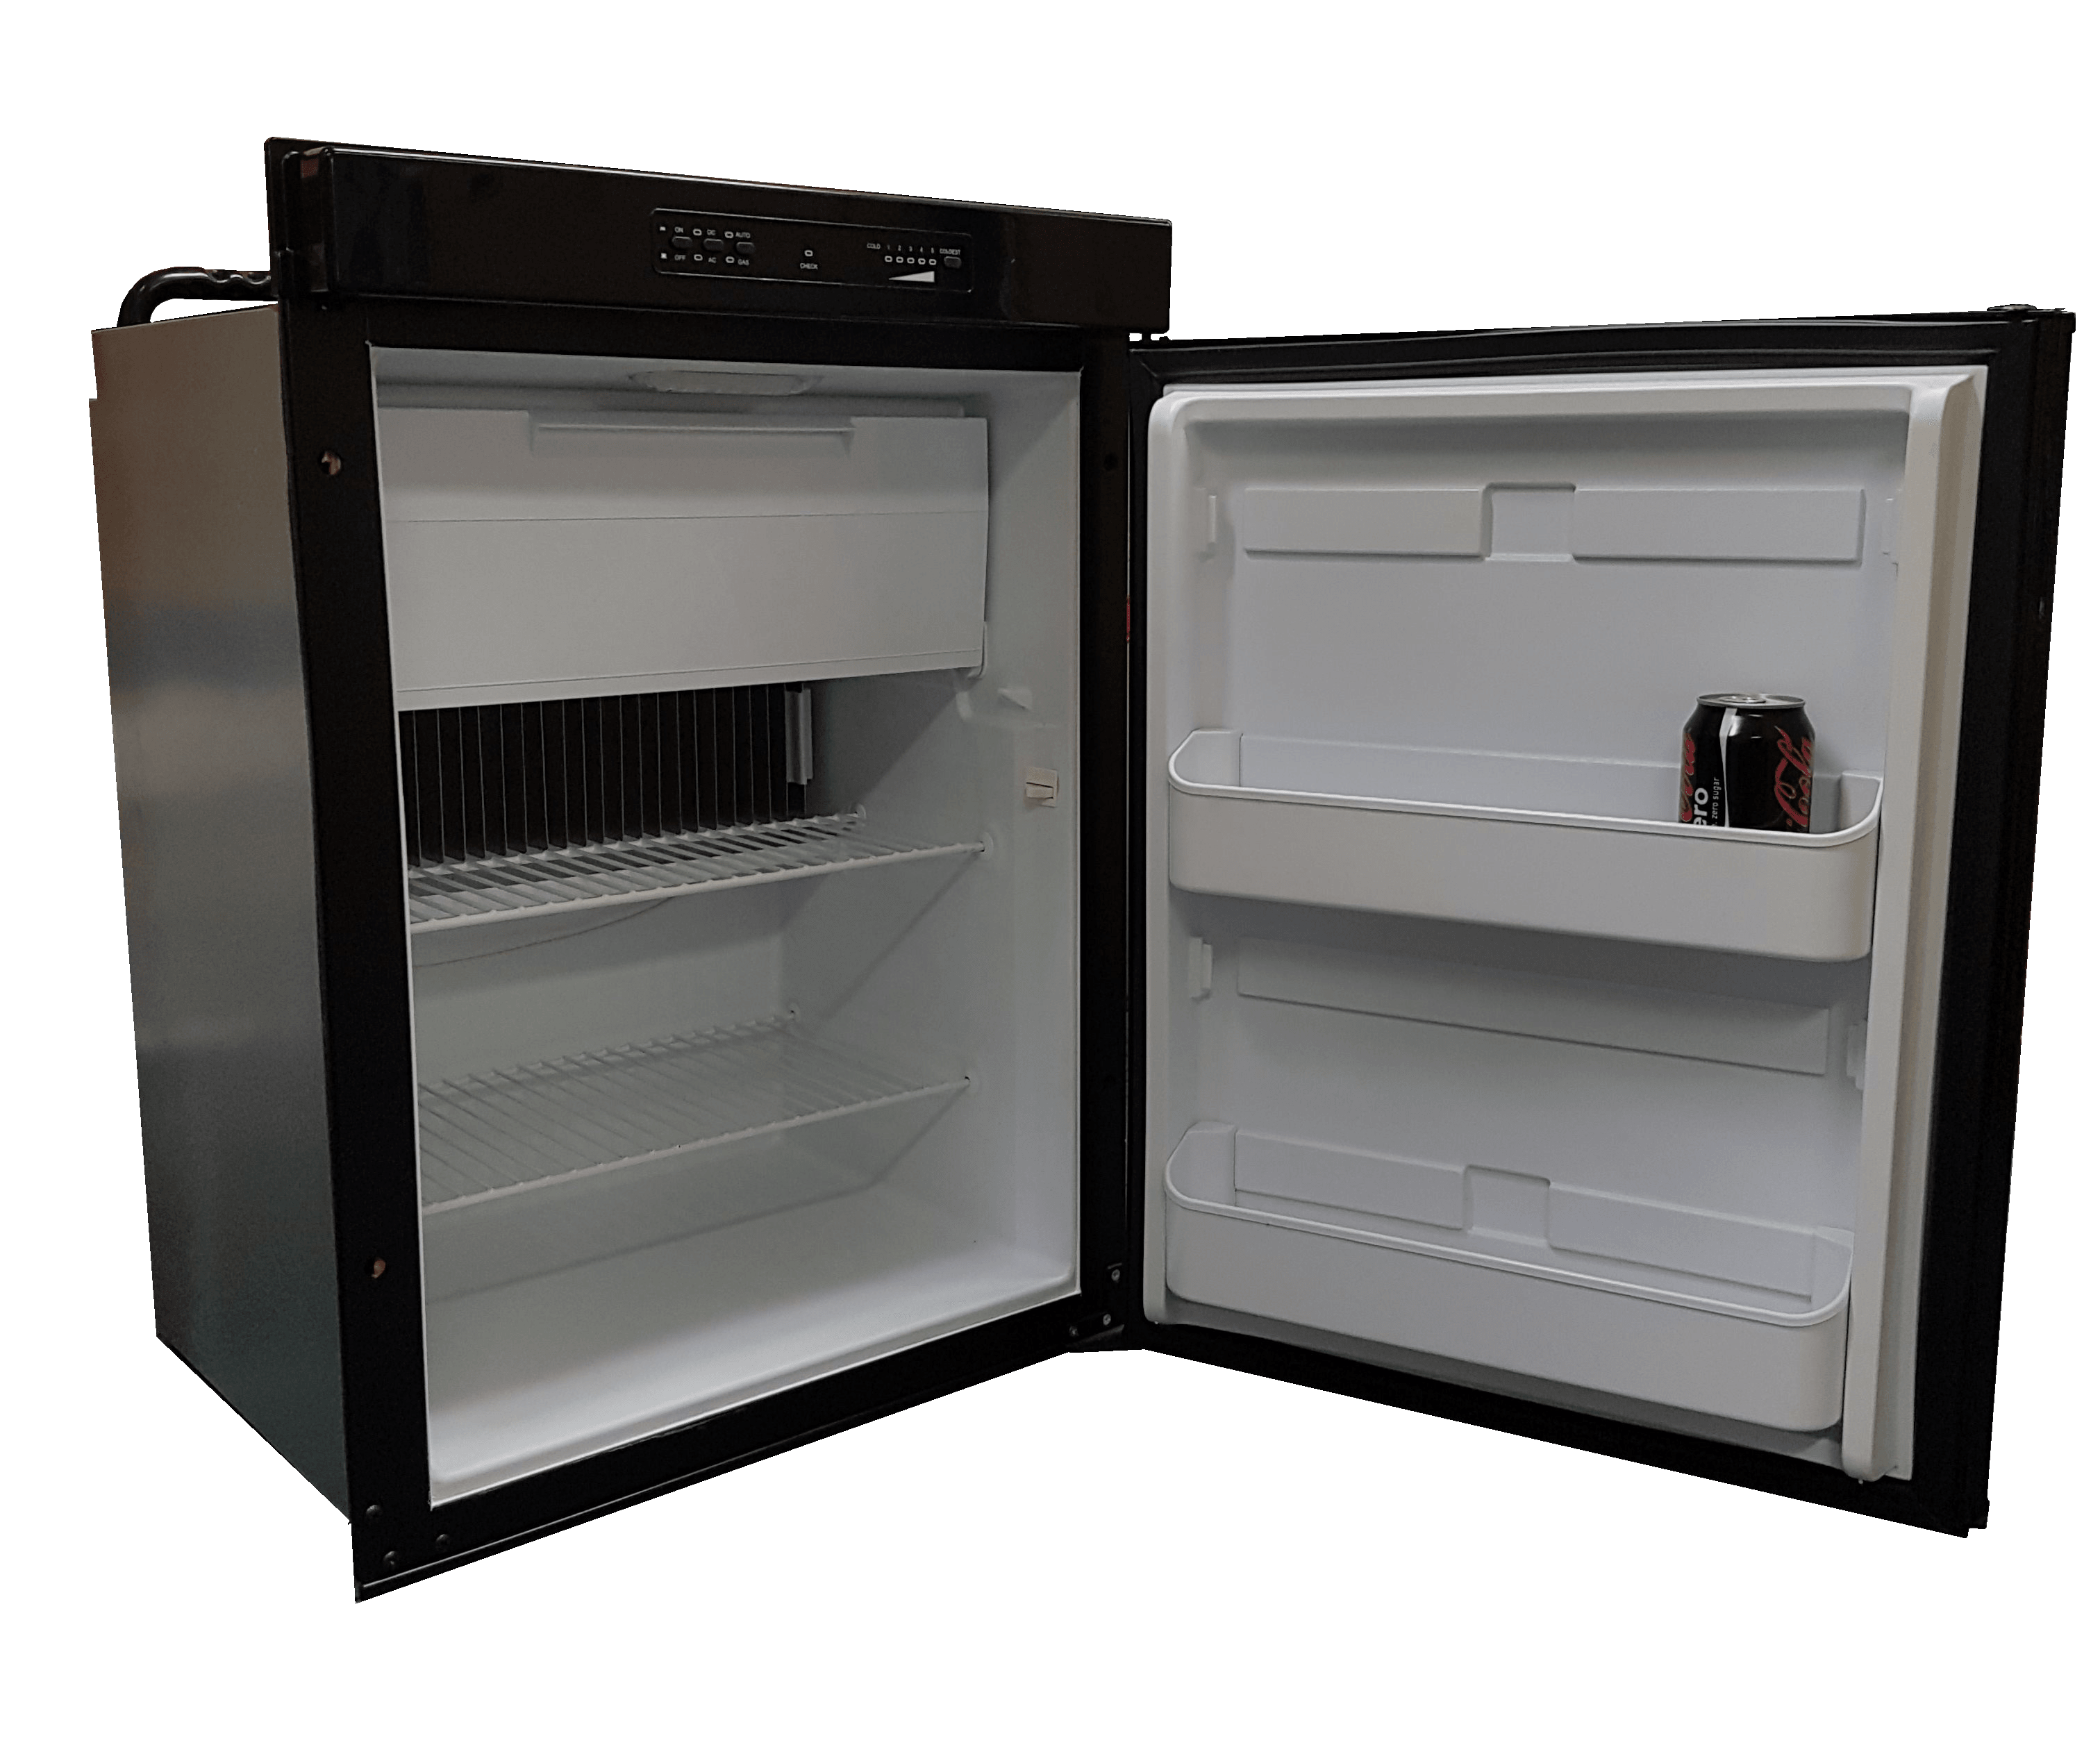 3 Way Refrigerator >> Keep Your Cool In The Far North With New 3 Way Fridge For The